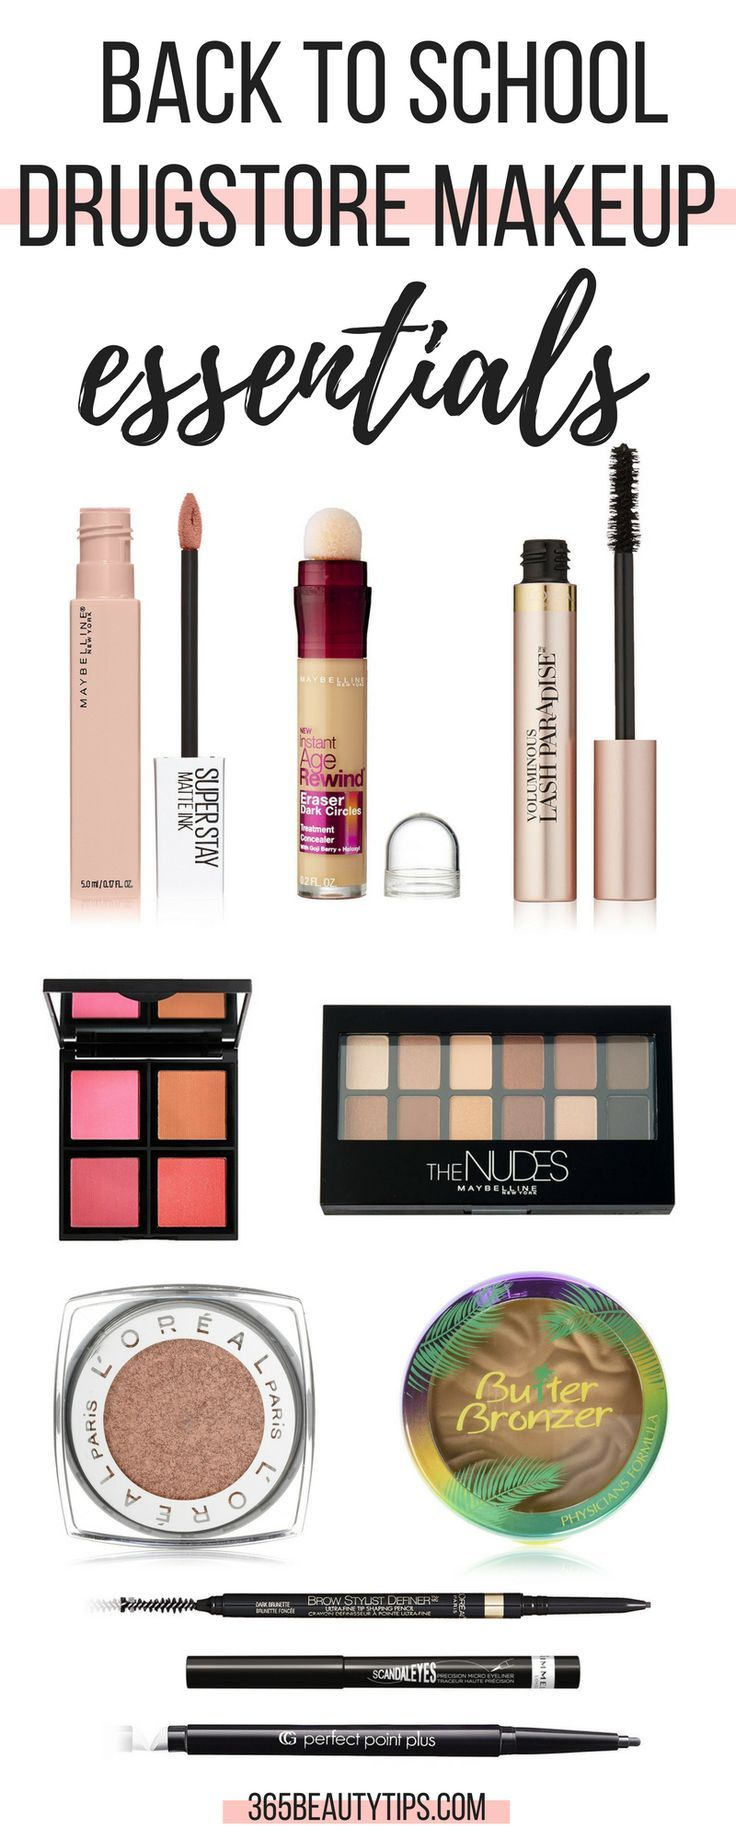 Back to school drugstore makeup essentials: check out these affordable, time - saving makeup picks!